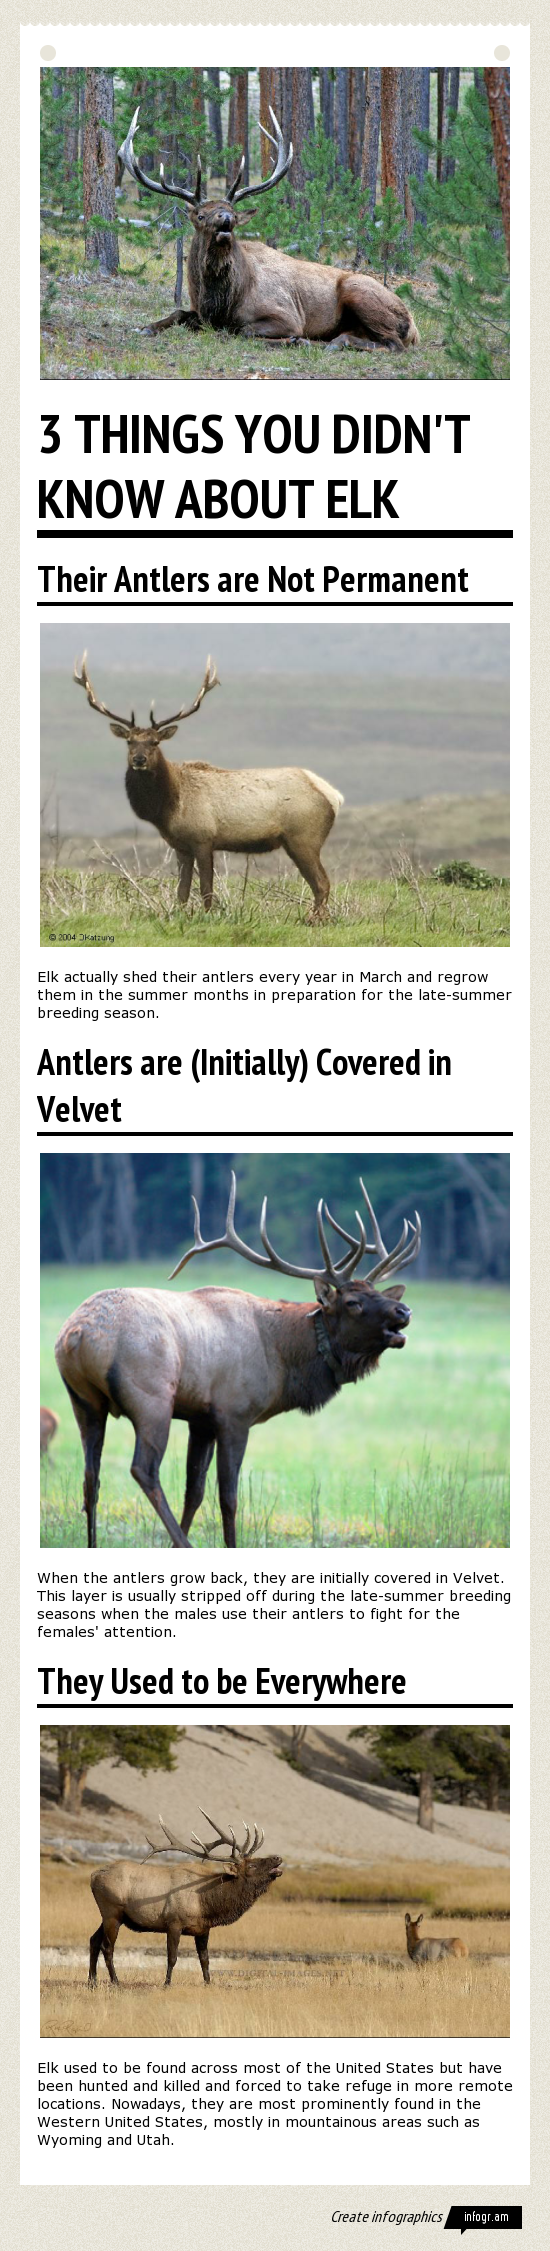 3 Things You Didn't Know About Elk